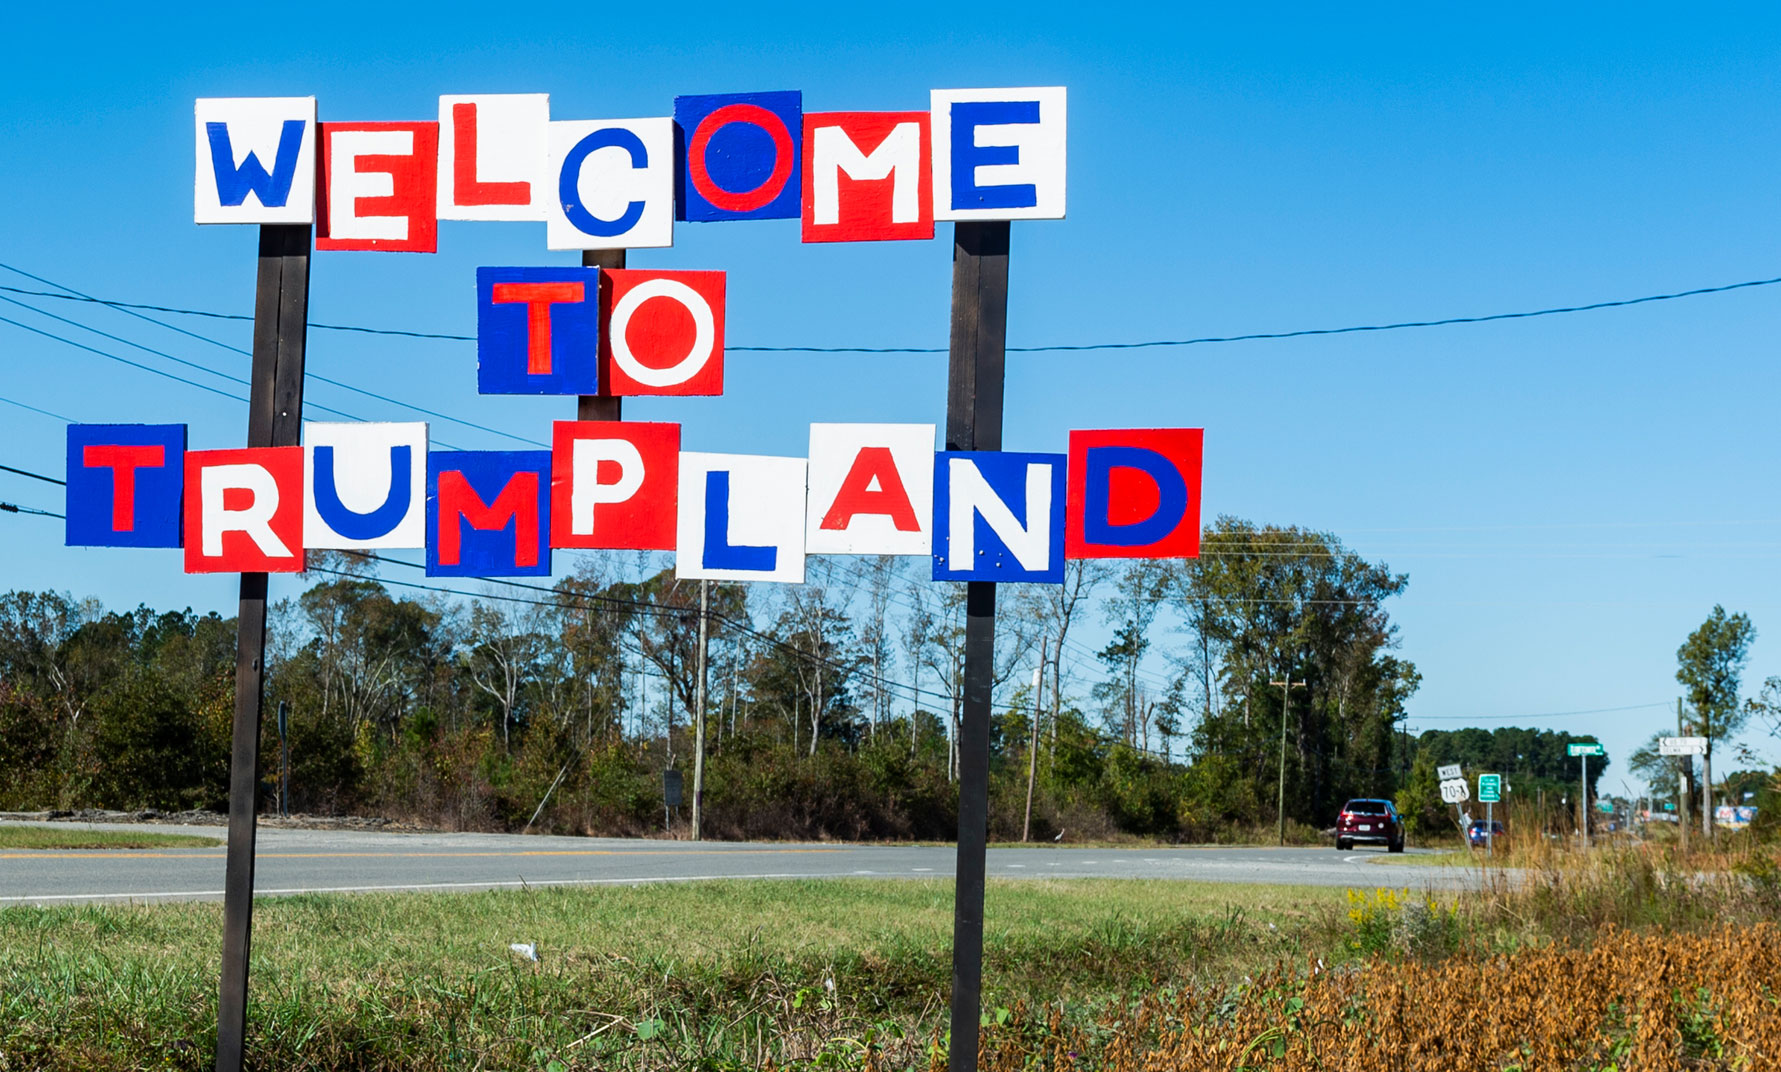 Welcome to Trump Land sign in rural North Carolina